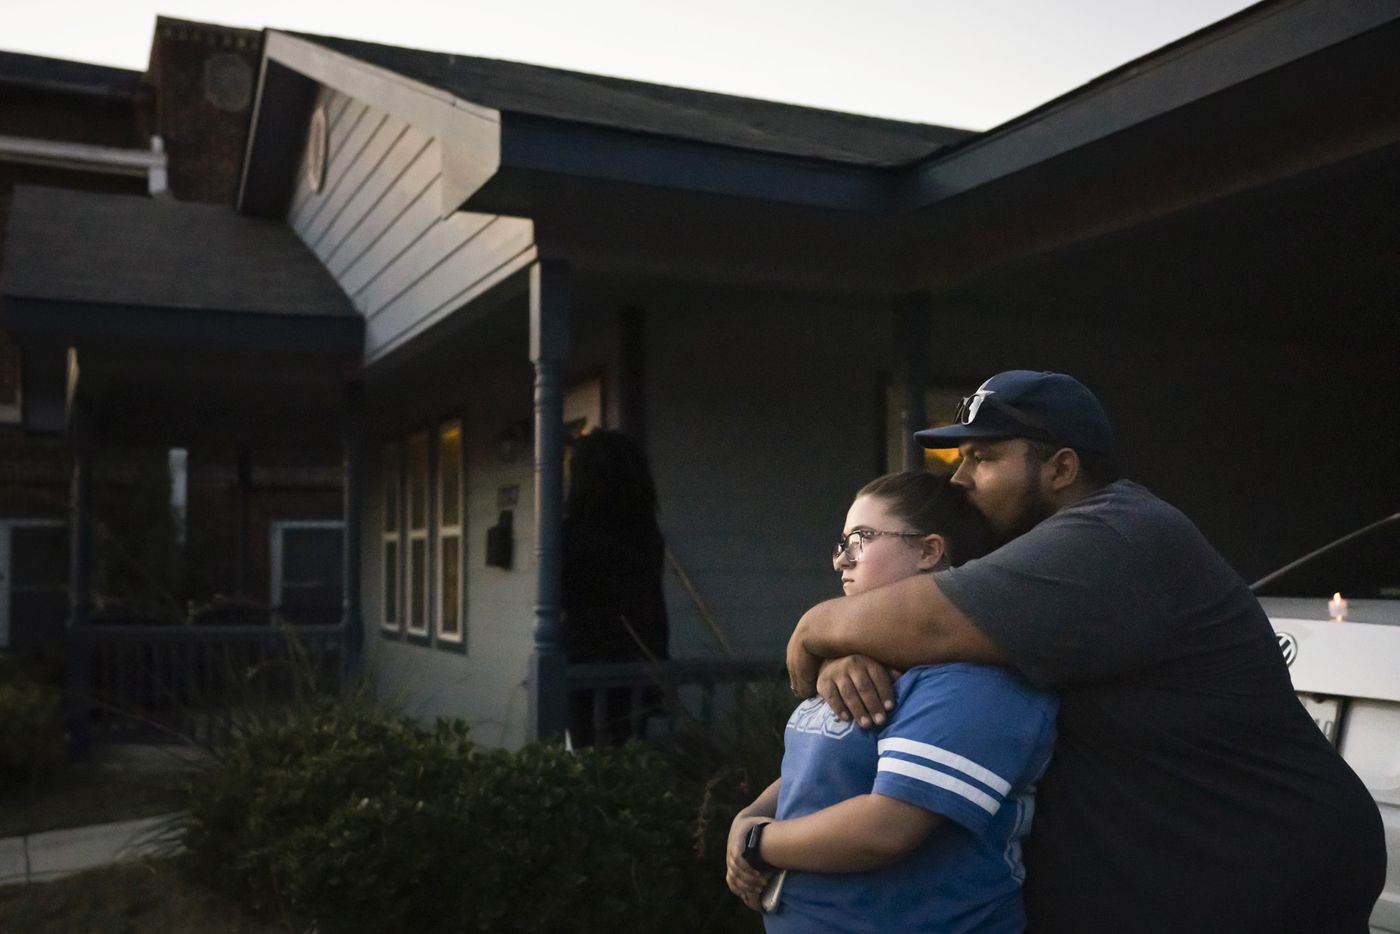 Destinie and Floriberto Bartolo mourn for their friend Atatiana Jefferson who they say they have known since high school, outside the house where Jefferson was shot and killed by a police officer, during a community vigil for Jefferson on Sunday, Oct. 13, 2019, in Fort Worth.